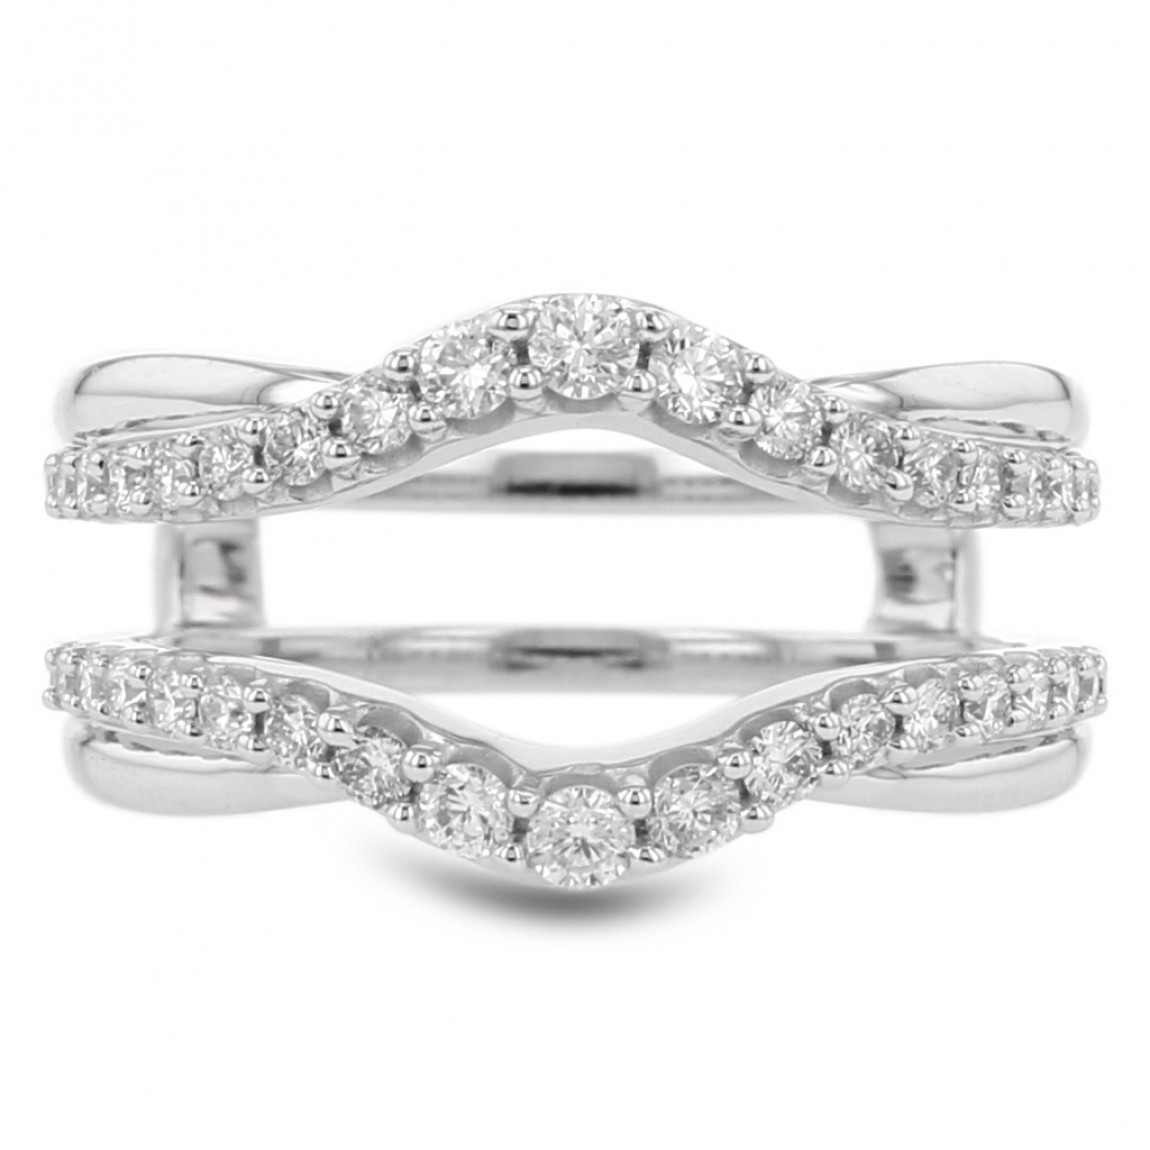 Diamond Cradle Wedding Band, Enhancer Ring, Curved, 14k White Gold, (View 17 of 25)